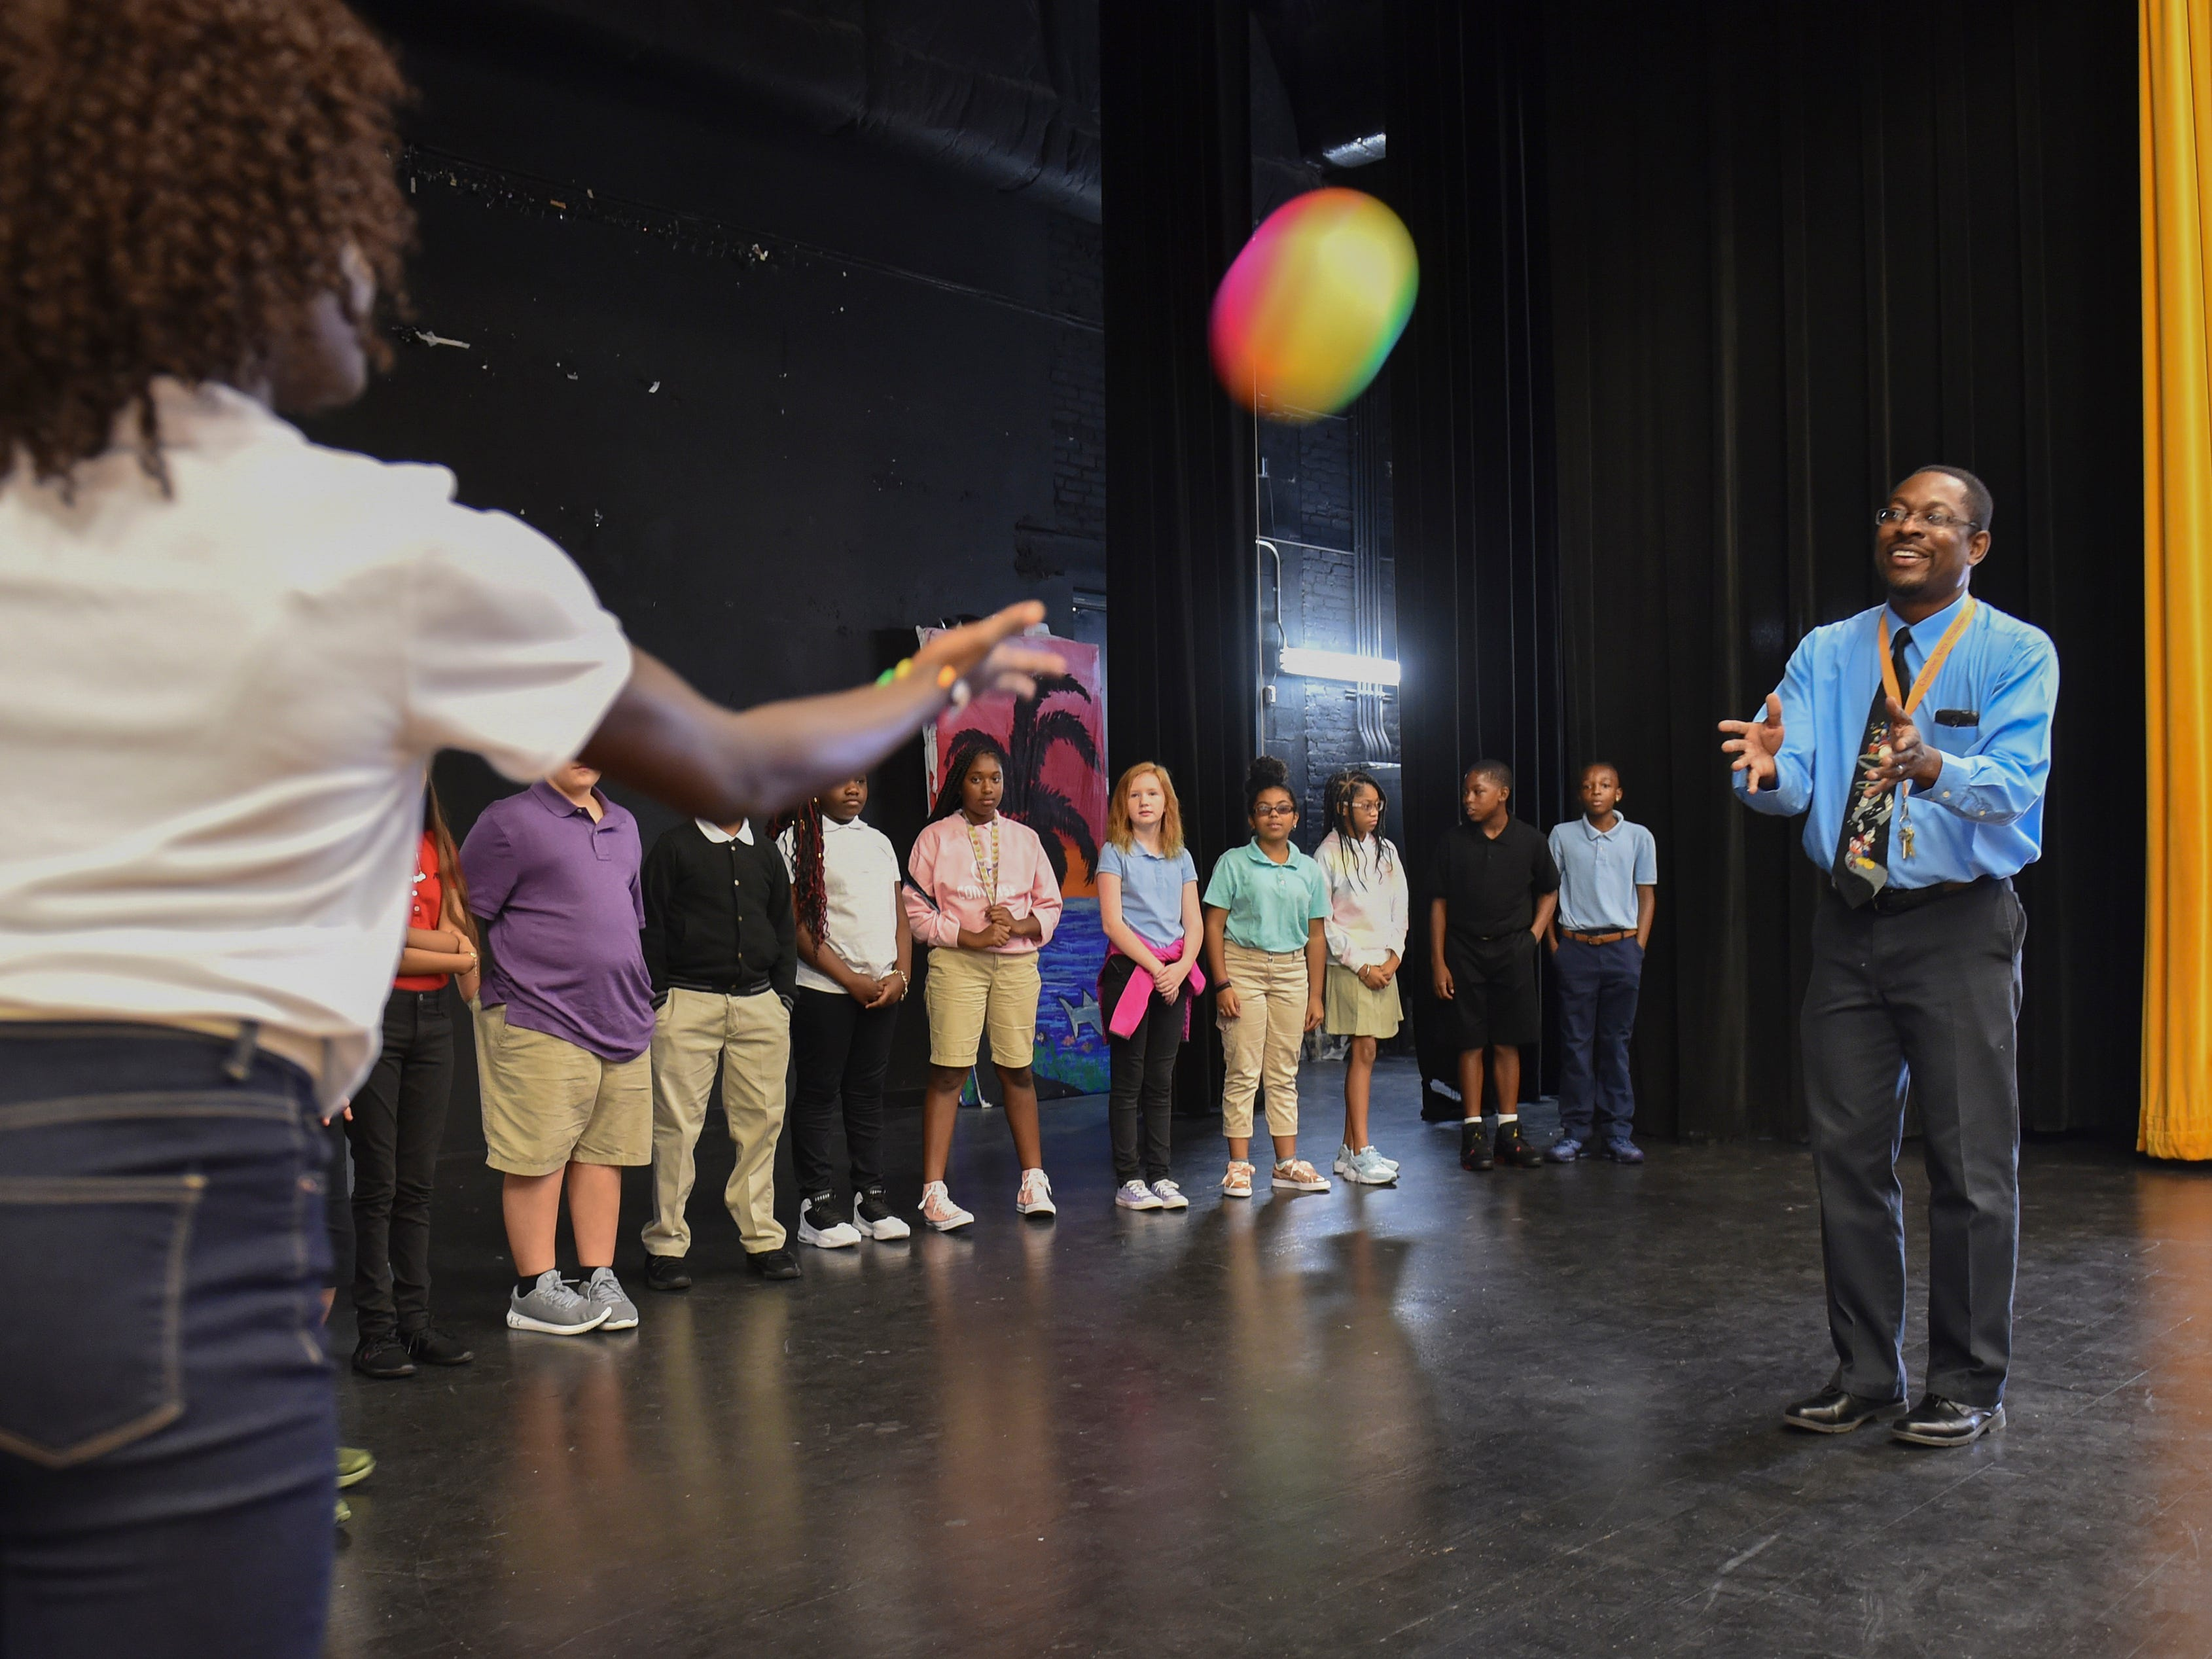 """Wallace Rahming (right), musical theater teacher at the new Creative Arts Academy of St. Lucie, interacts with some theatre games to break the ice with his sixth-grade students on the first day of school on Monday, August 13, 2018 in Fort Pierce. """"It's homecoming for me. I taught in this county for eleven years, left for sixteen, and coming back, it's going to be exciting,"""" Rahming said. """"We're doing some great things here especially with the arts. We've never done it in St. Lucie County before, so I'm really excited about the opportunity."""""""